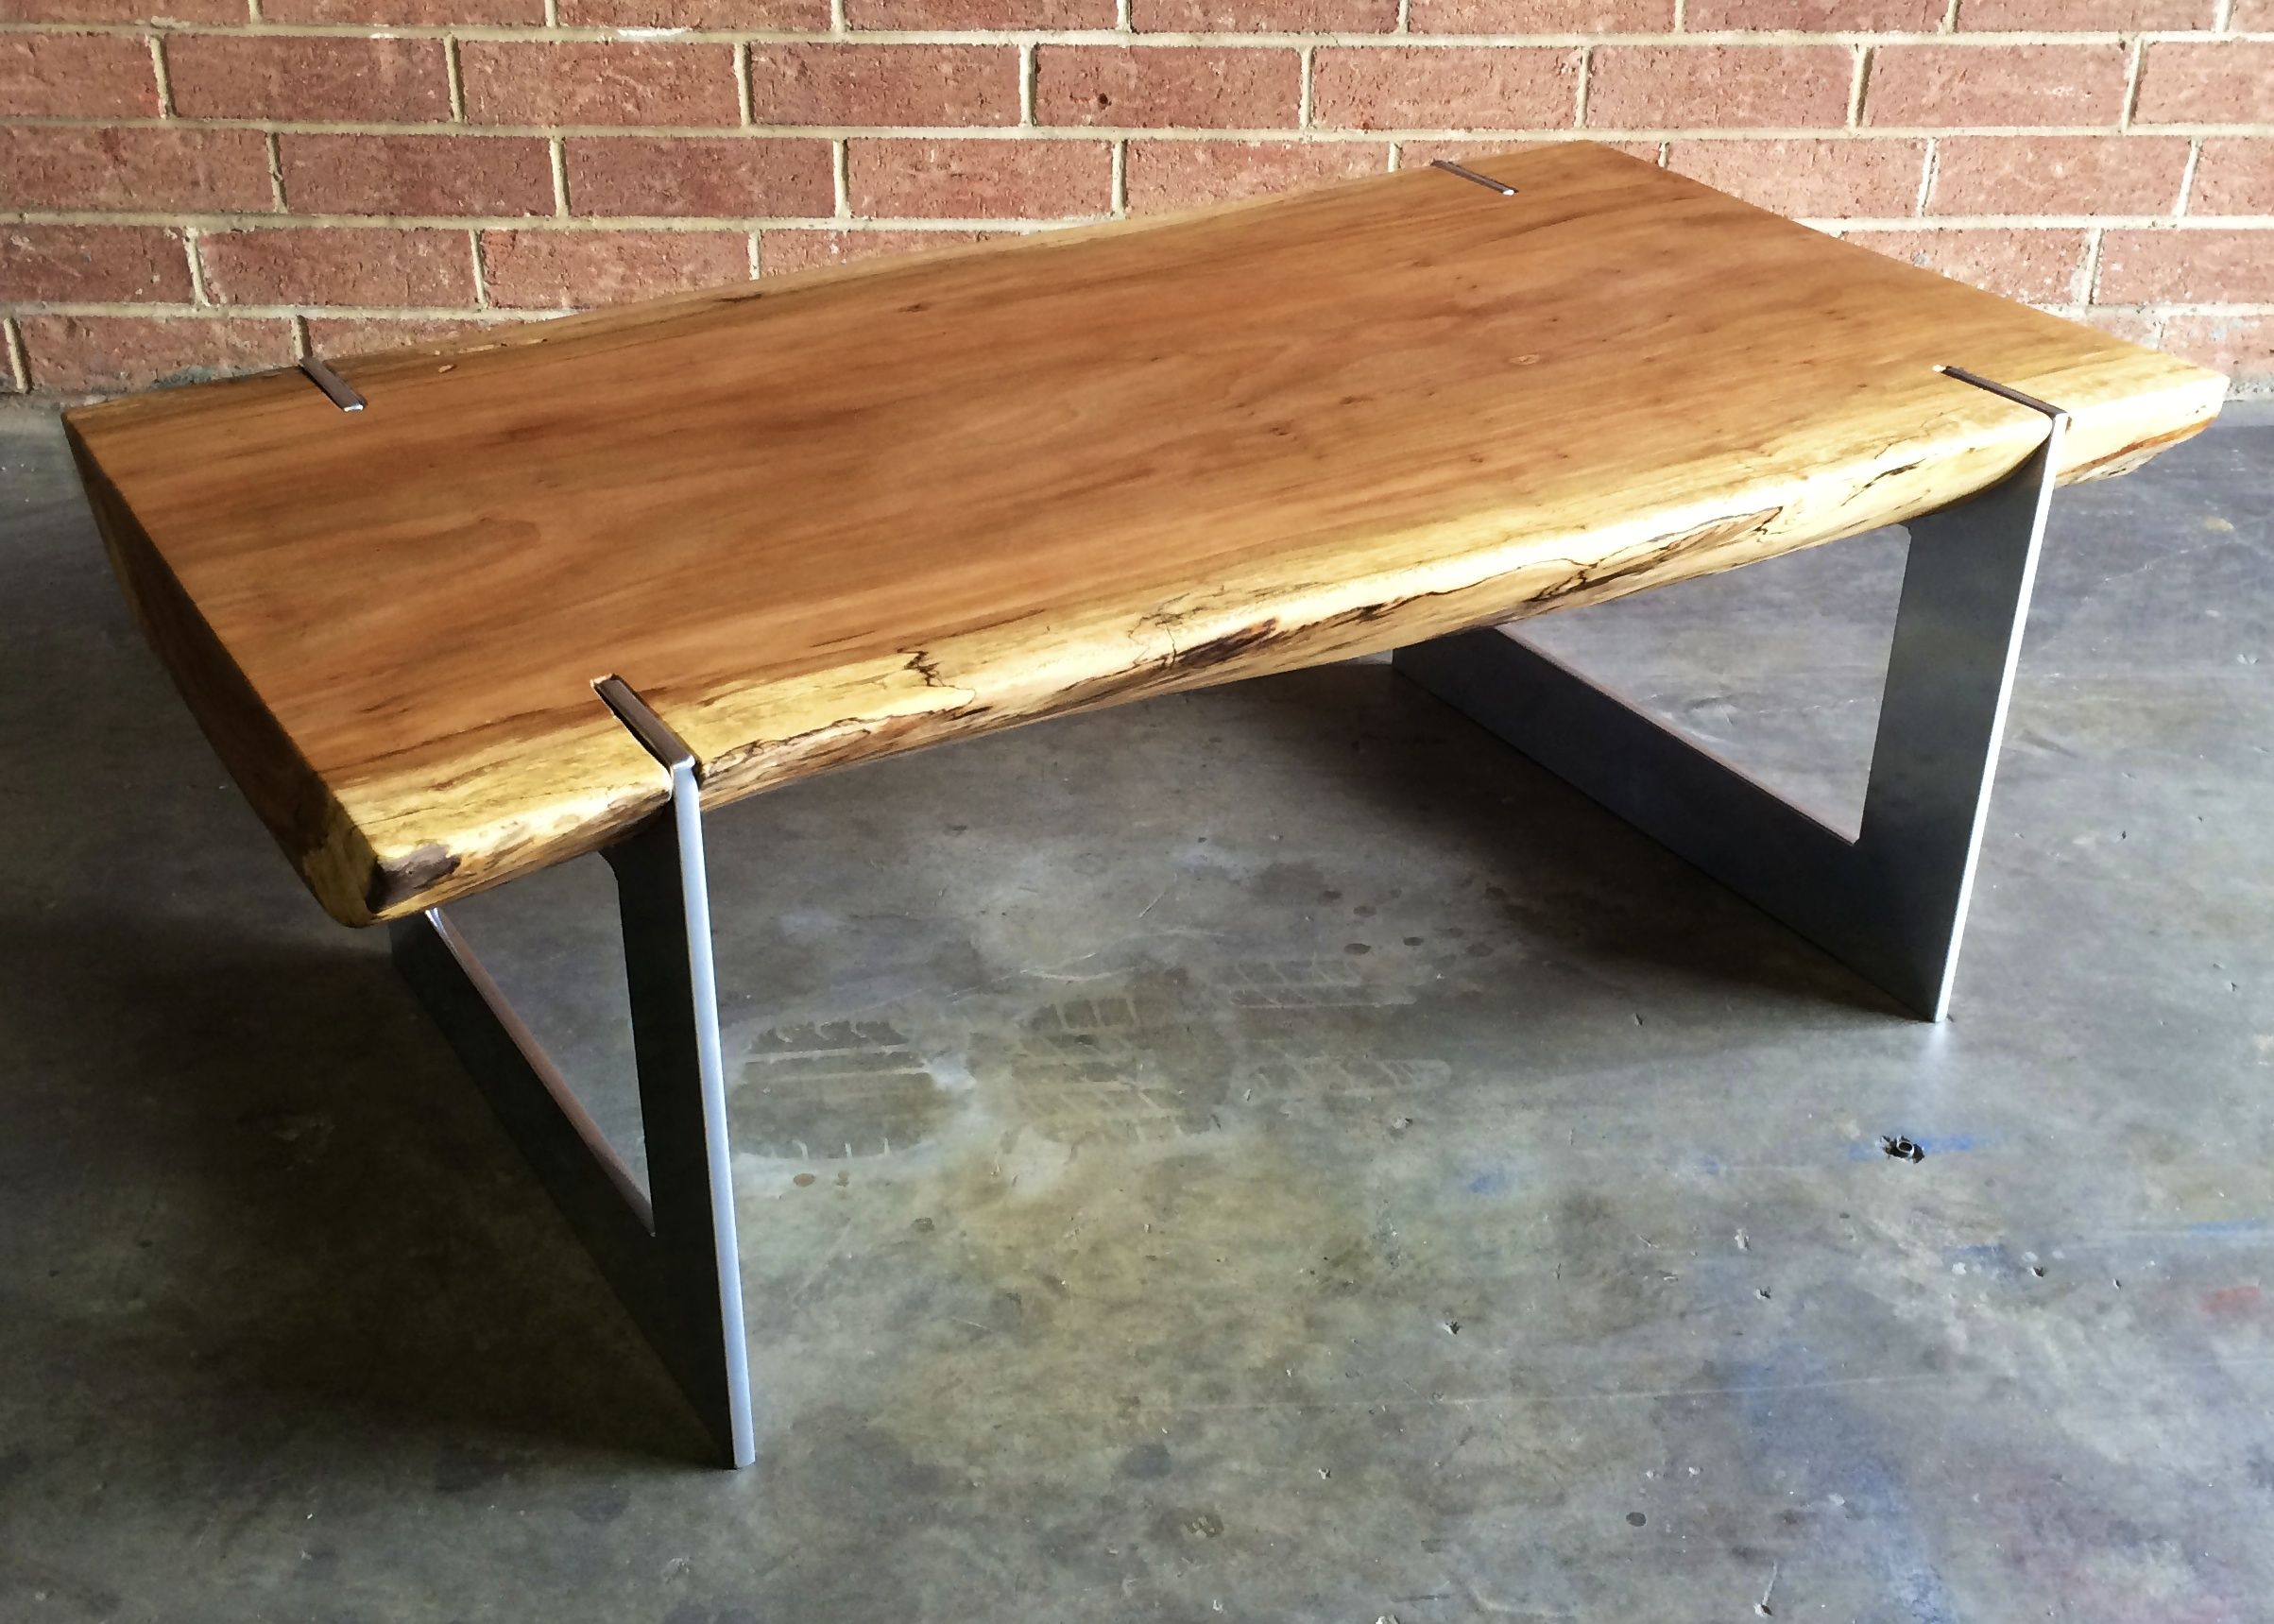 Live Edge Coffee Table Josh Utsey Design Live Edge Coffee Table Slab Sycamore